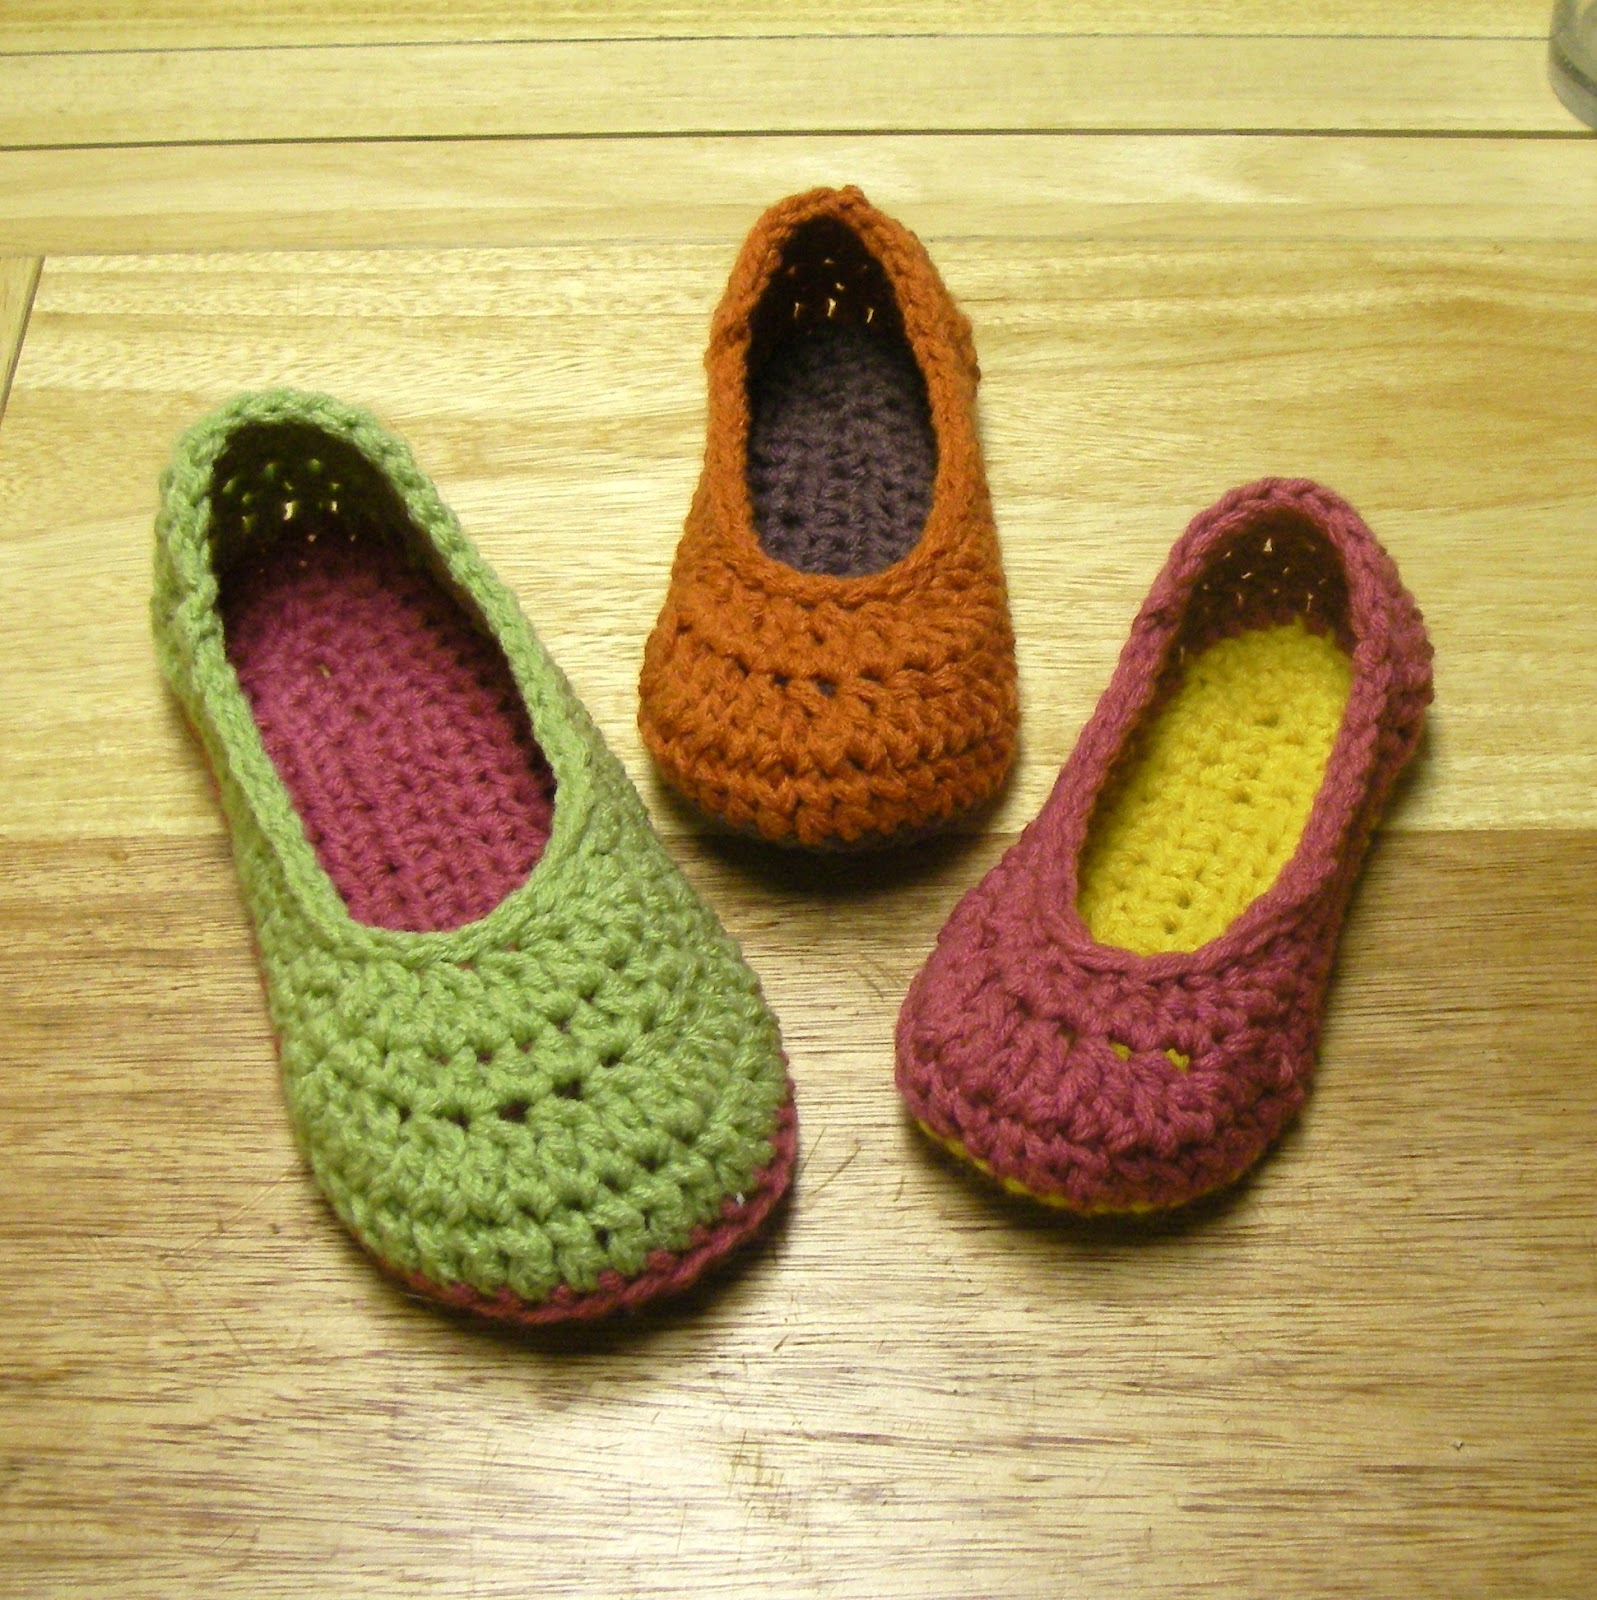 Quick Crocheting : ... has been moved to MAMACHEE.COM: Crocheting and more crocheting